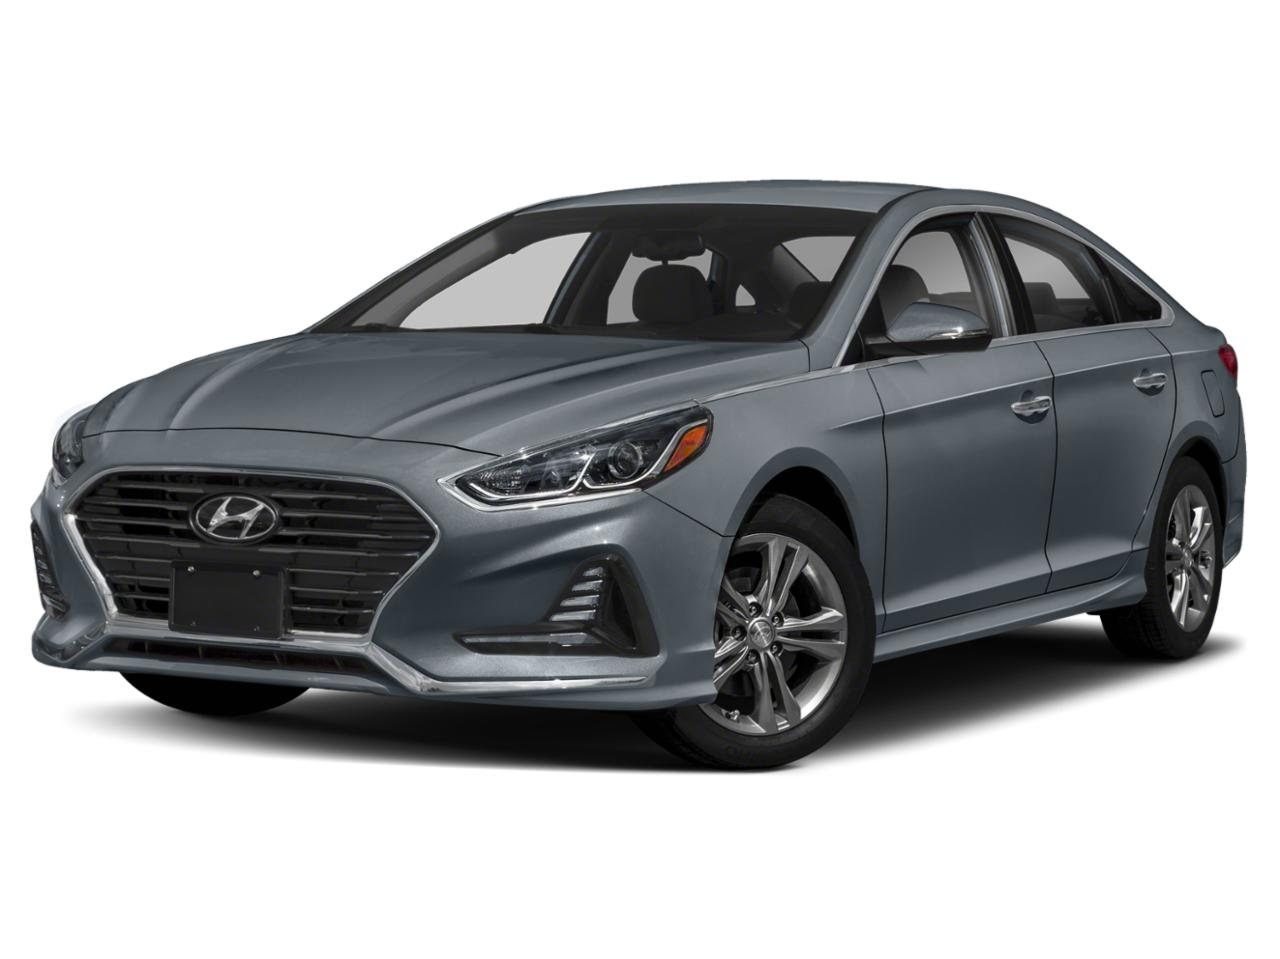 2018 Hyundai Sonata Vehicle Photo in Quakertown, PA 18951